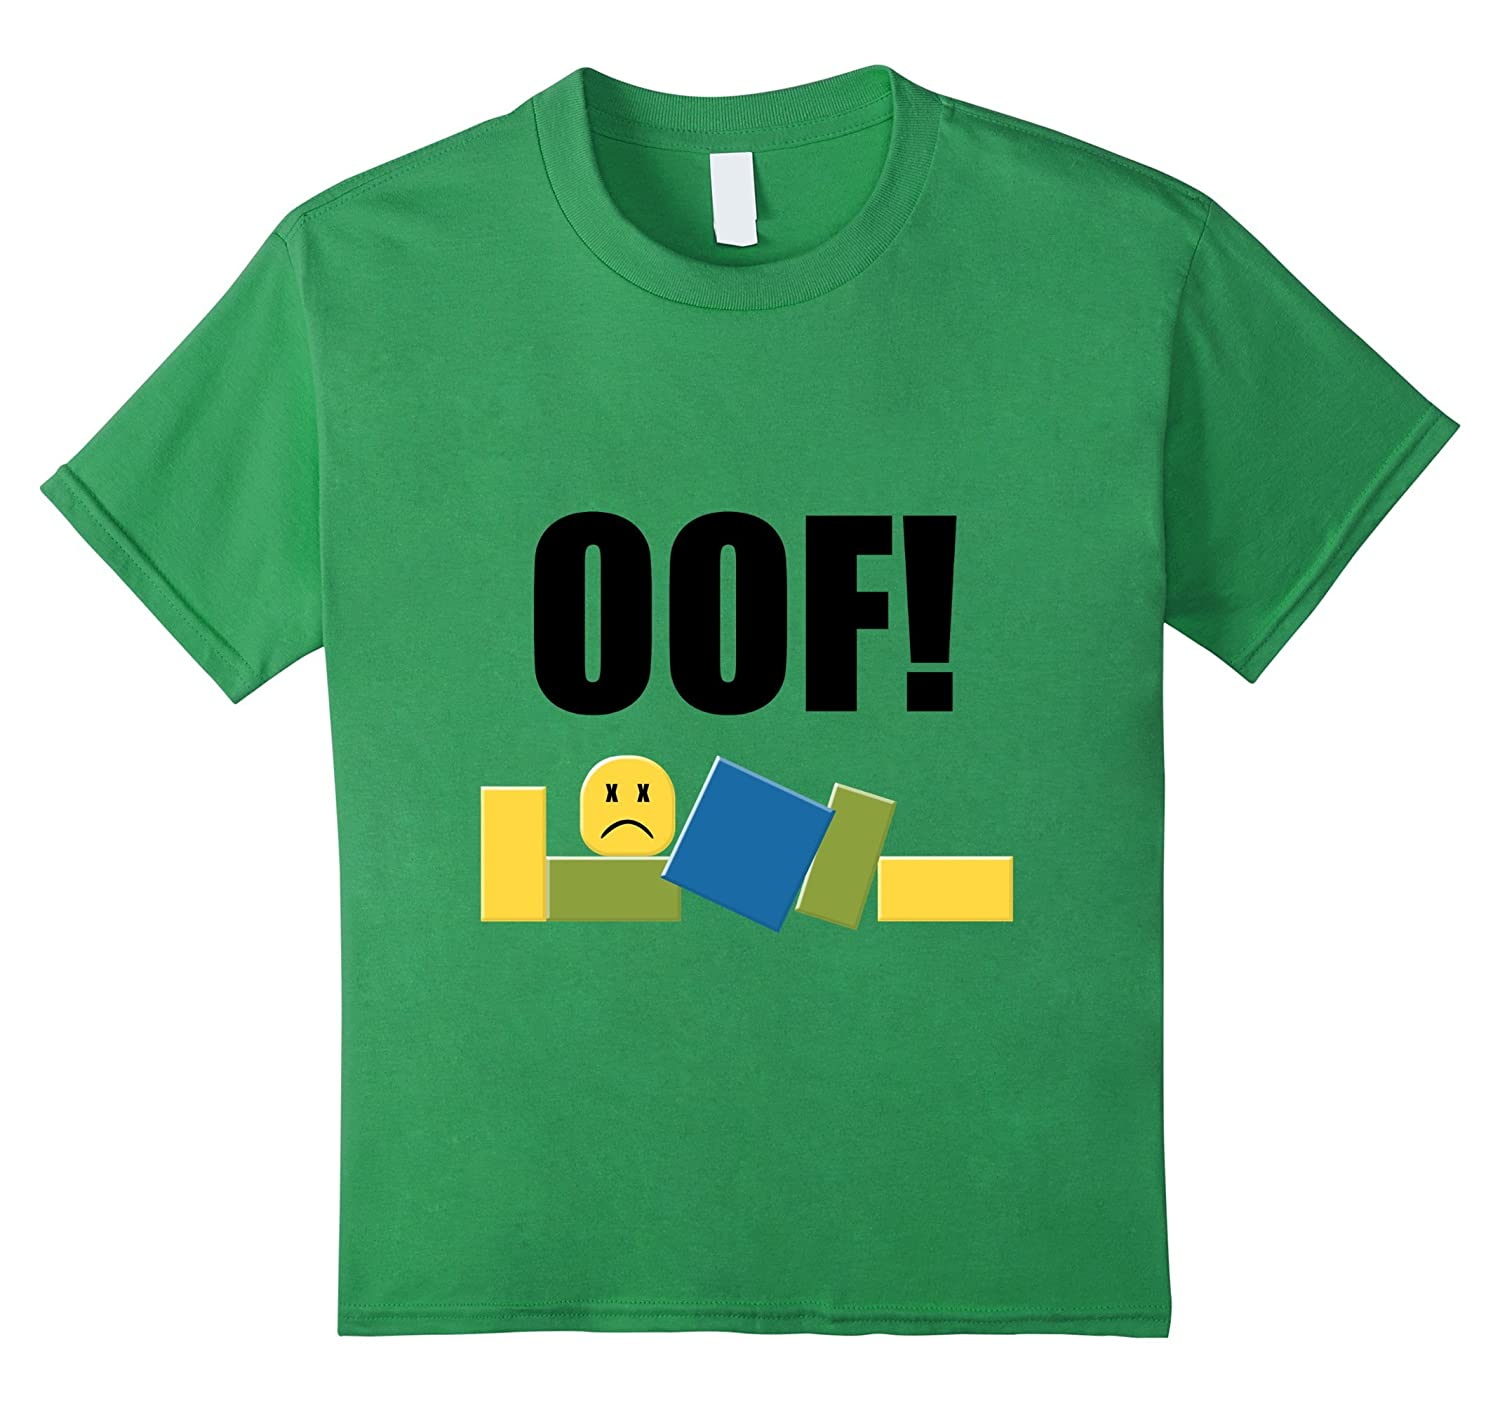 How To Make Really Good Shirt On Roblox Nils Stucki Kieferorthopade